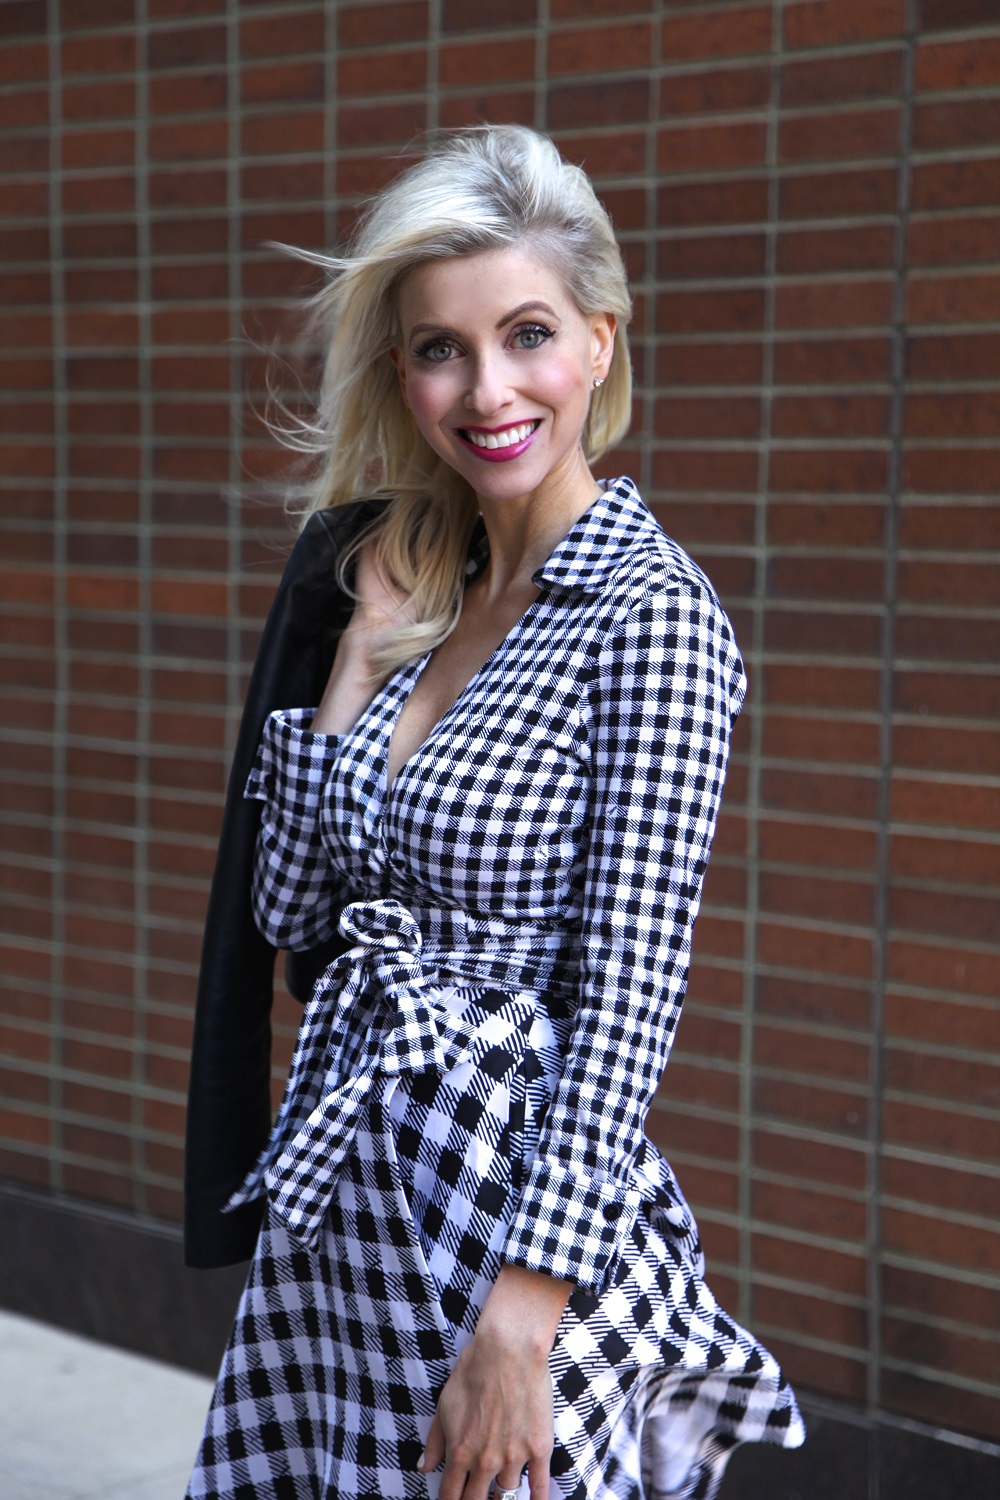 DVF Gingham Blown in the wind